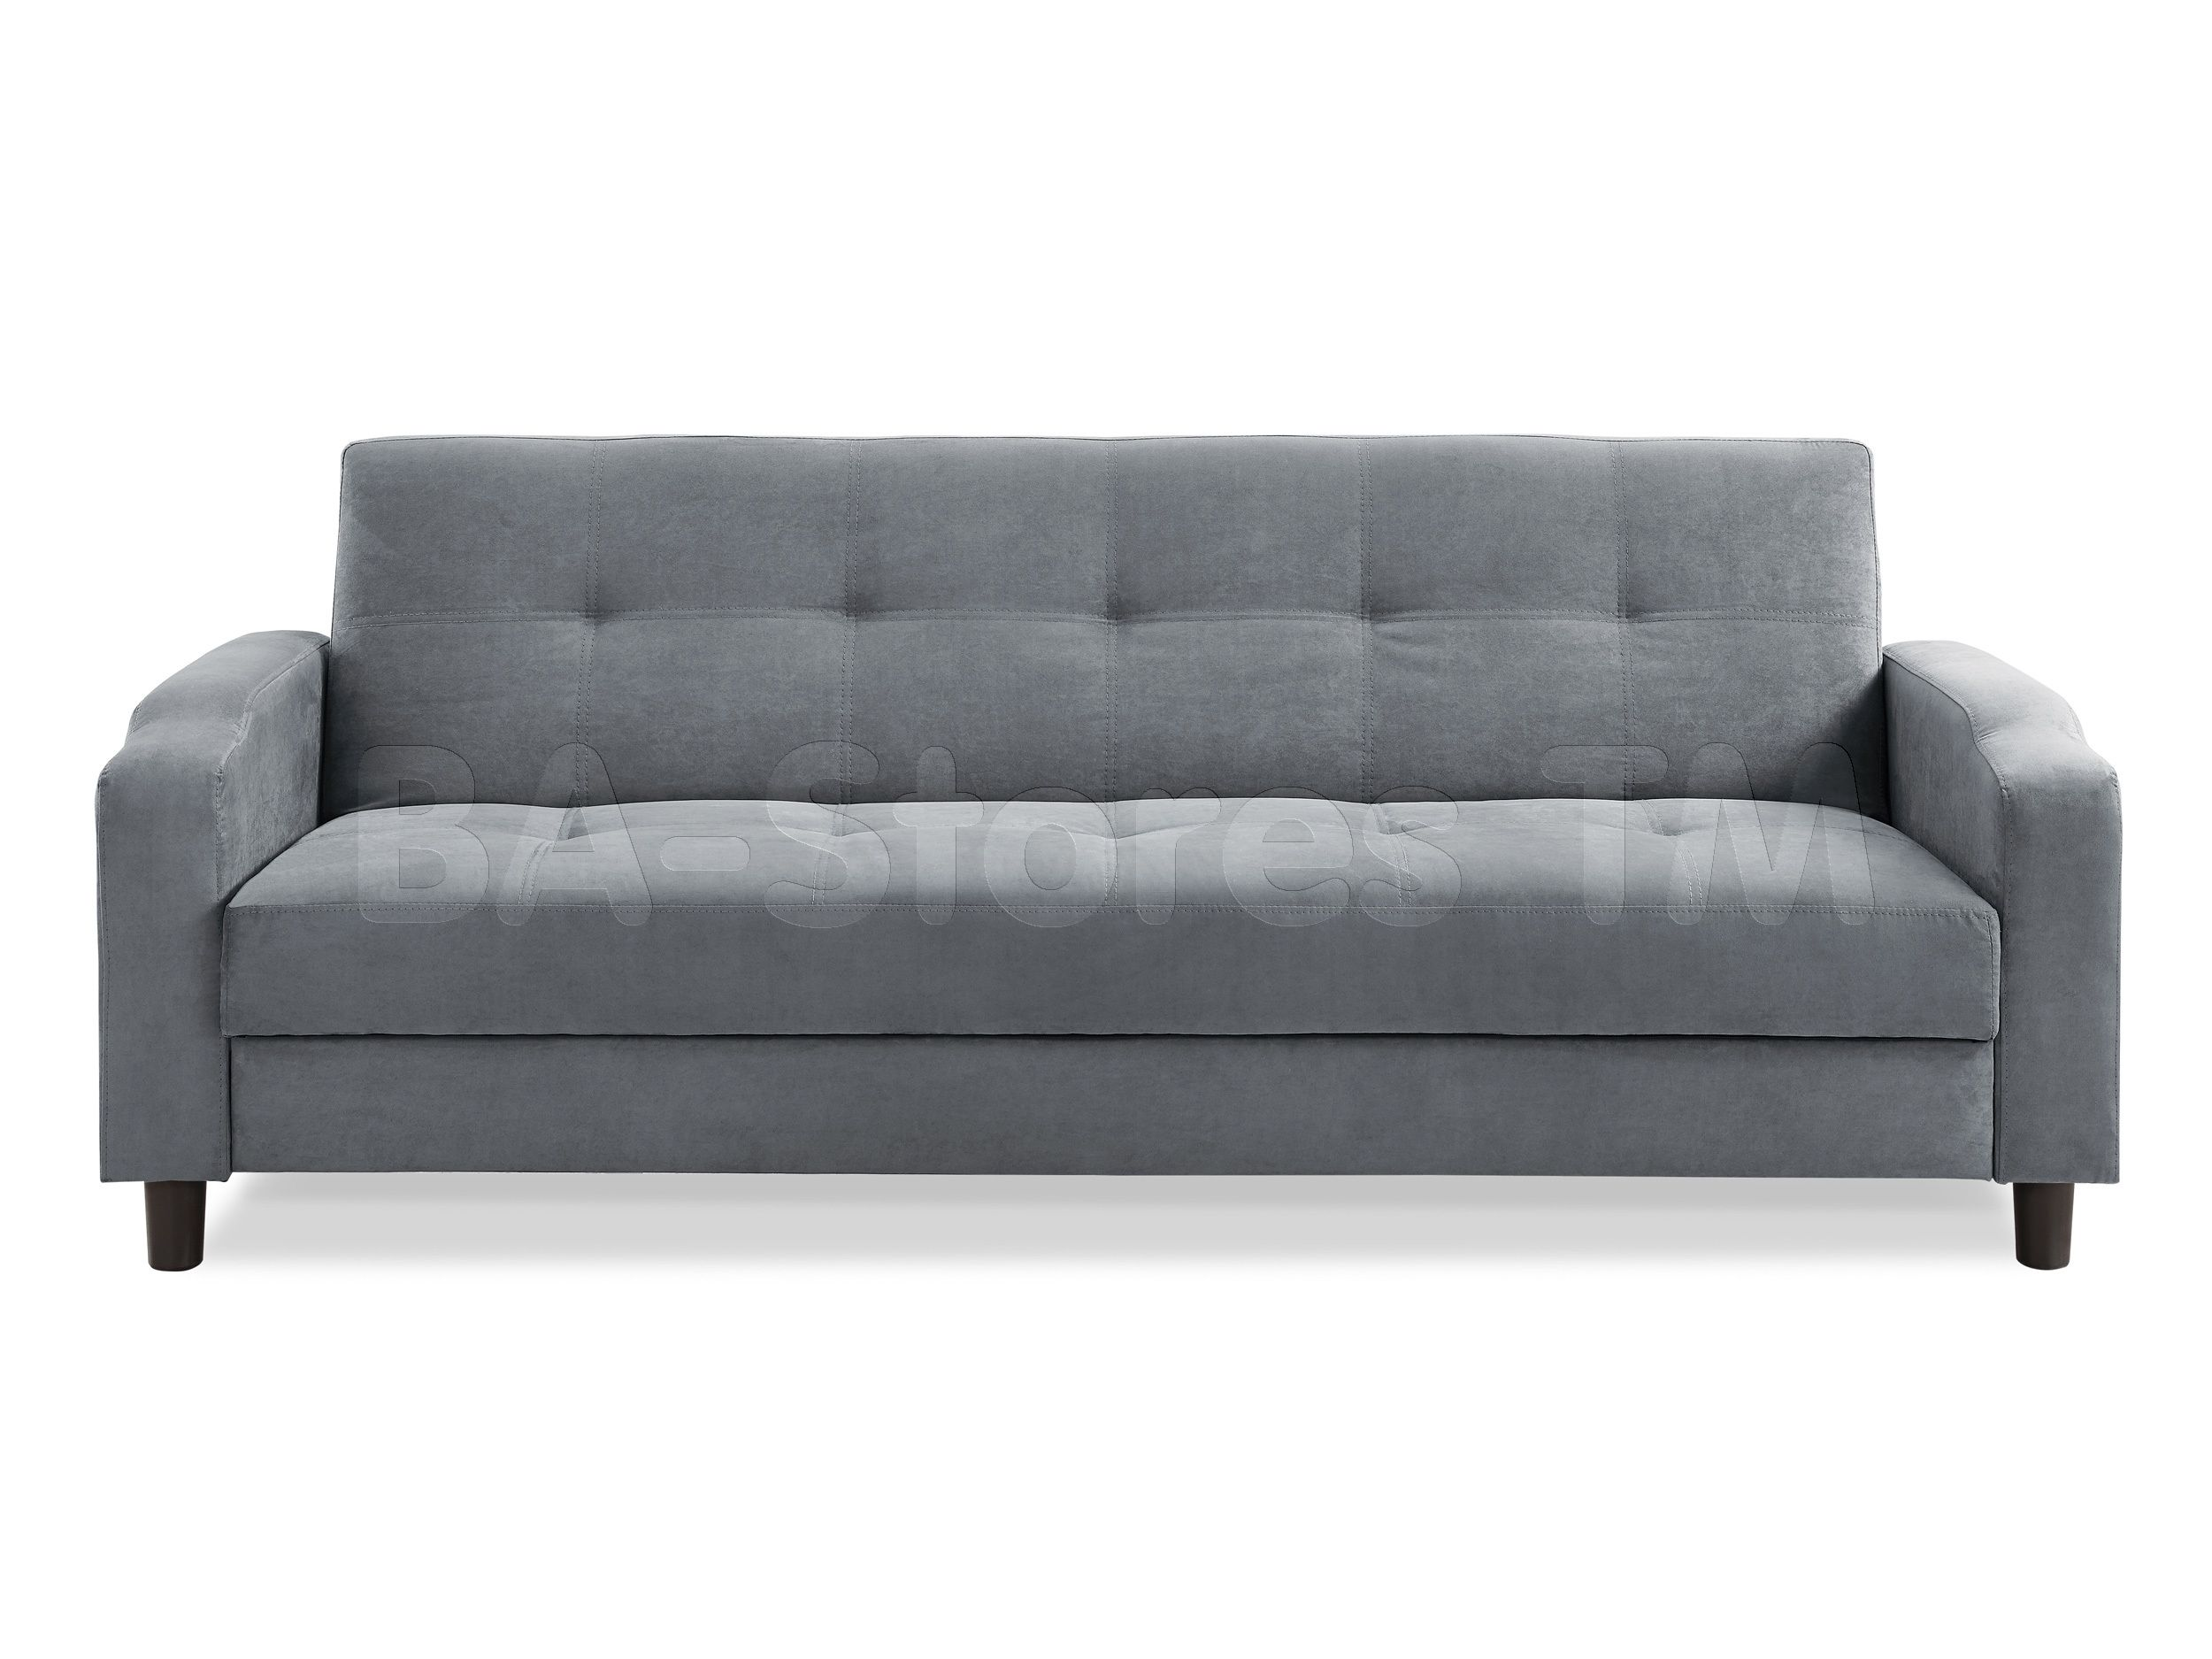 Reno convertible sofa bed slate grey for the home pinterest